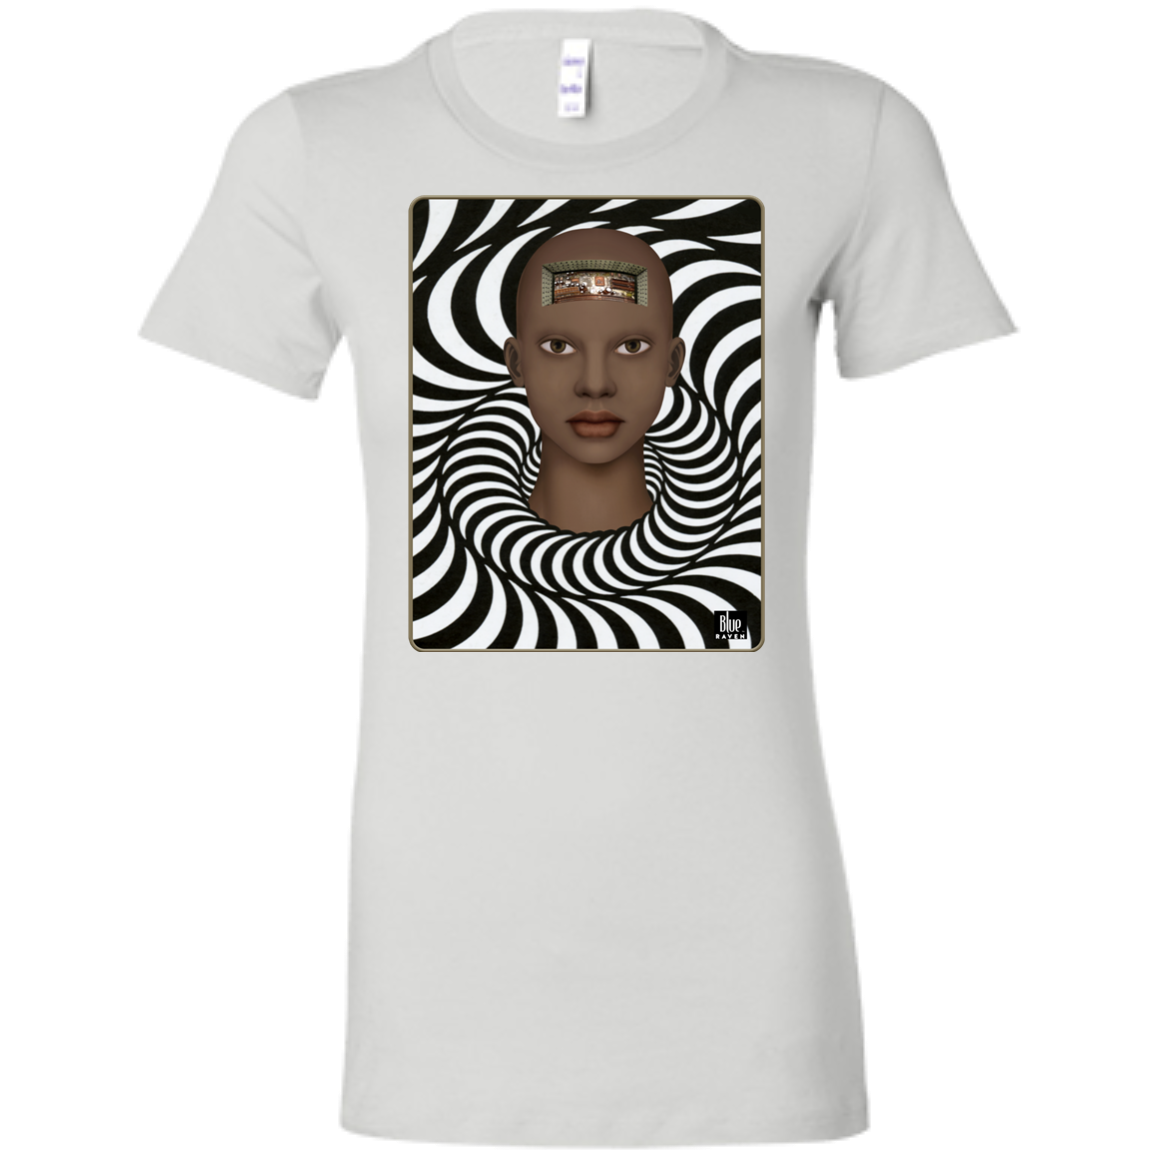 COMPUTERIZED 4 - Women's Fitted T-Shirt